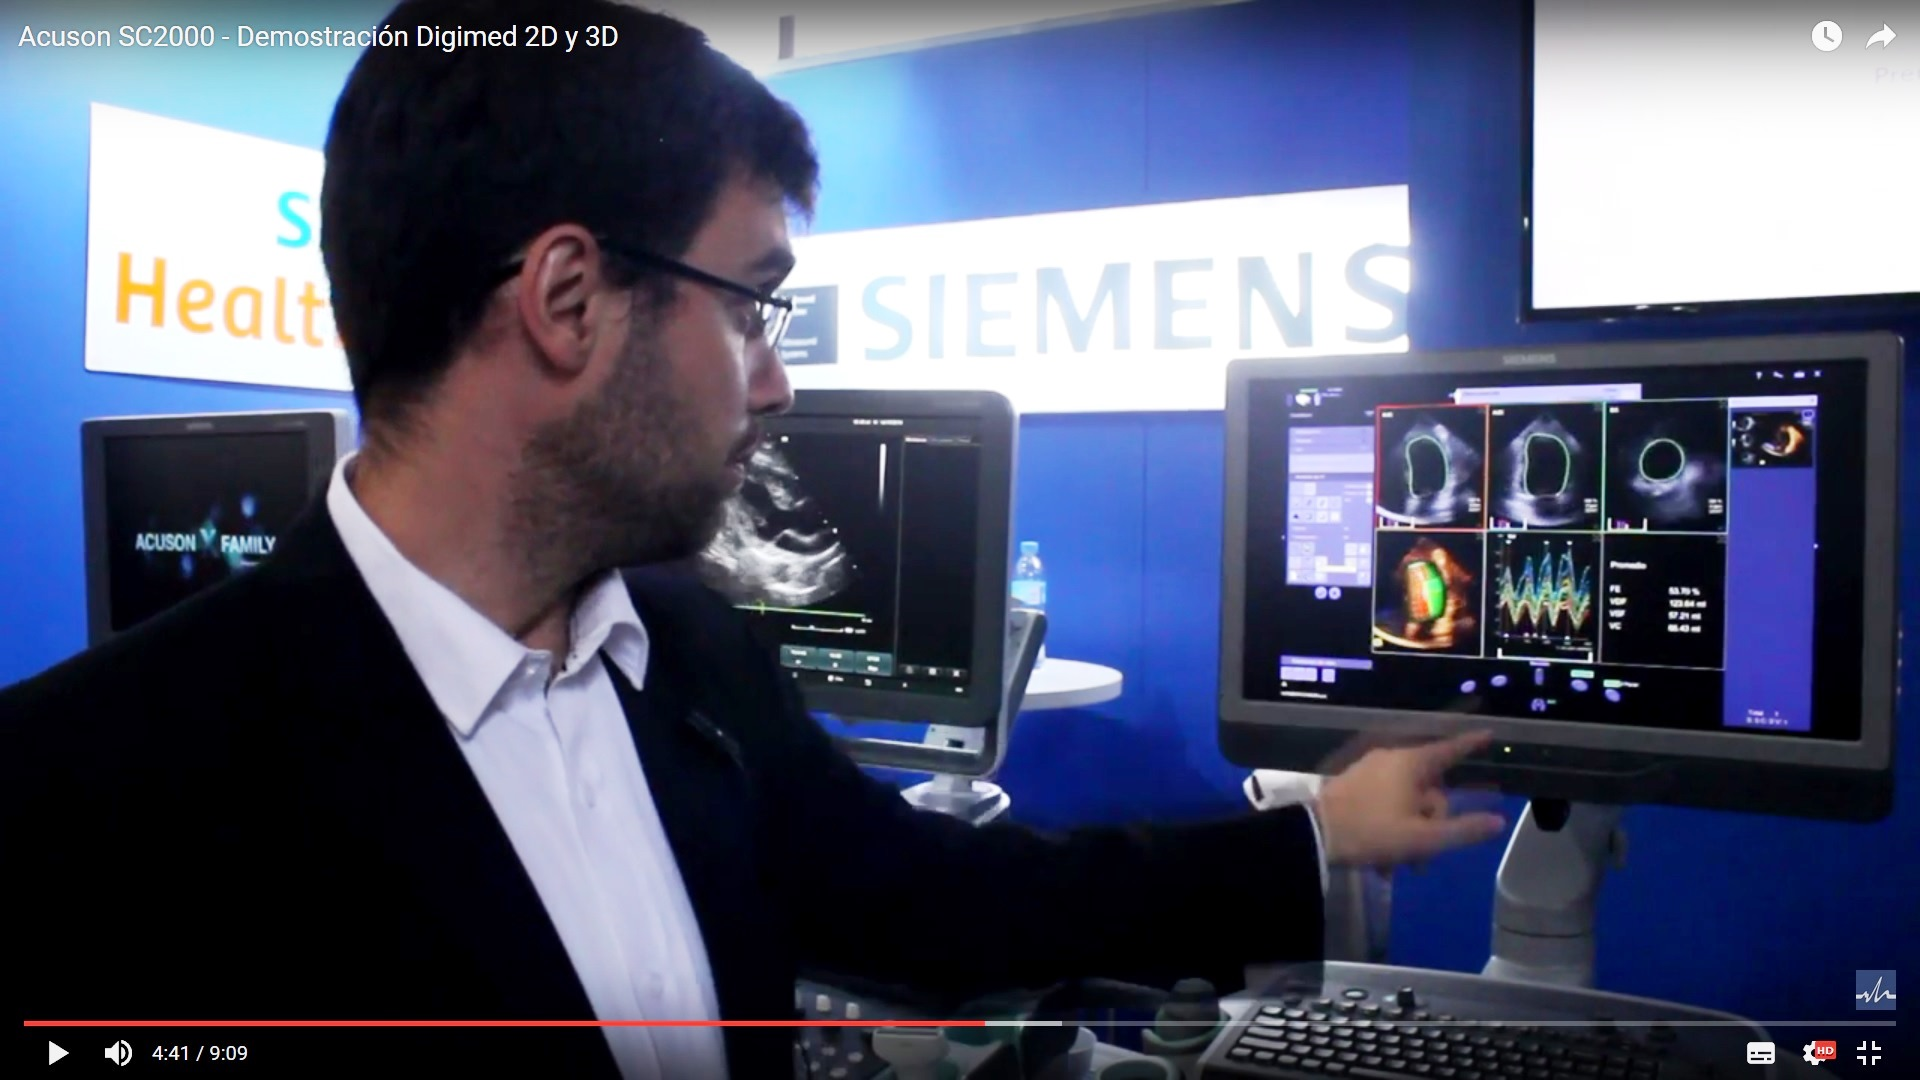 Acuson SC2000 – Demostración Digimed 2D y 3D